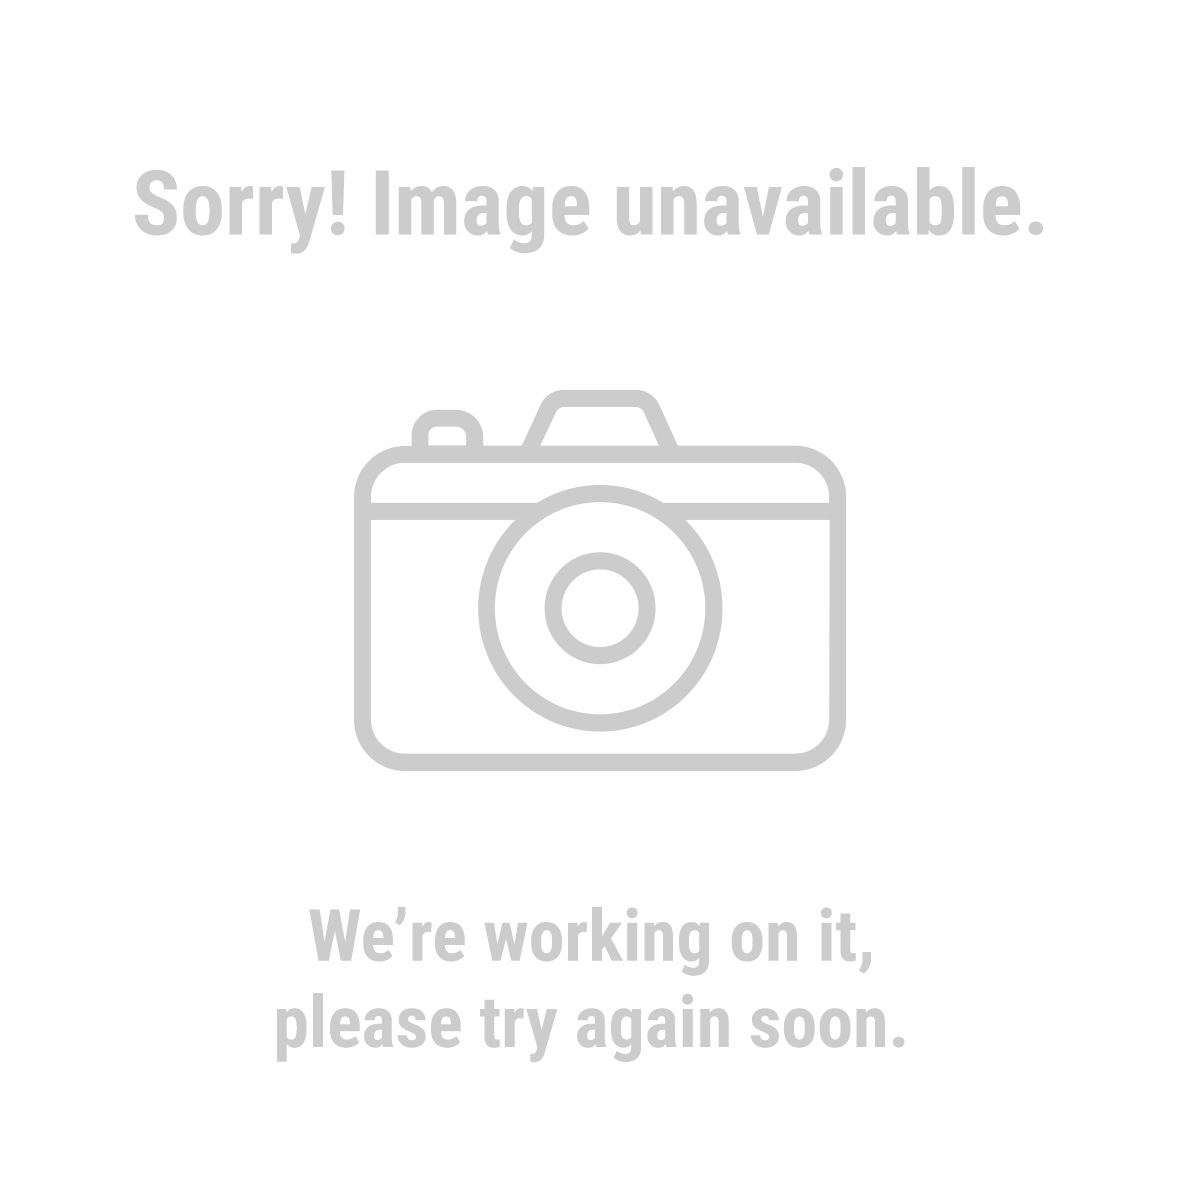 "Drill Master 2642 29 Piece High Speed Steel Drill Bits with 3/8"" Cutdown Shanks"